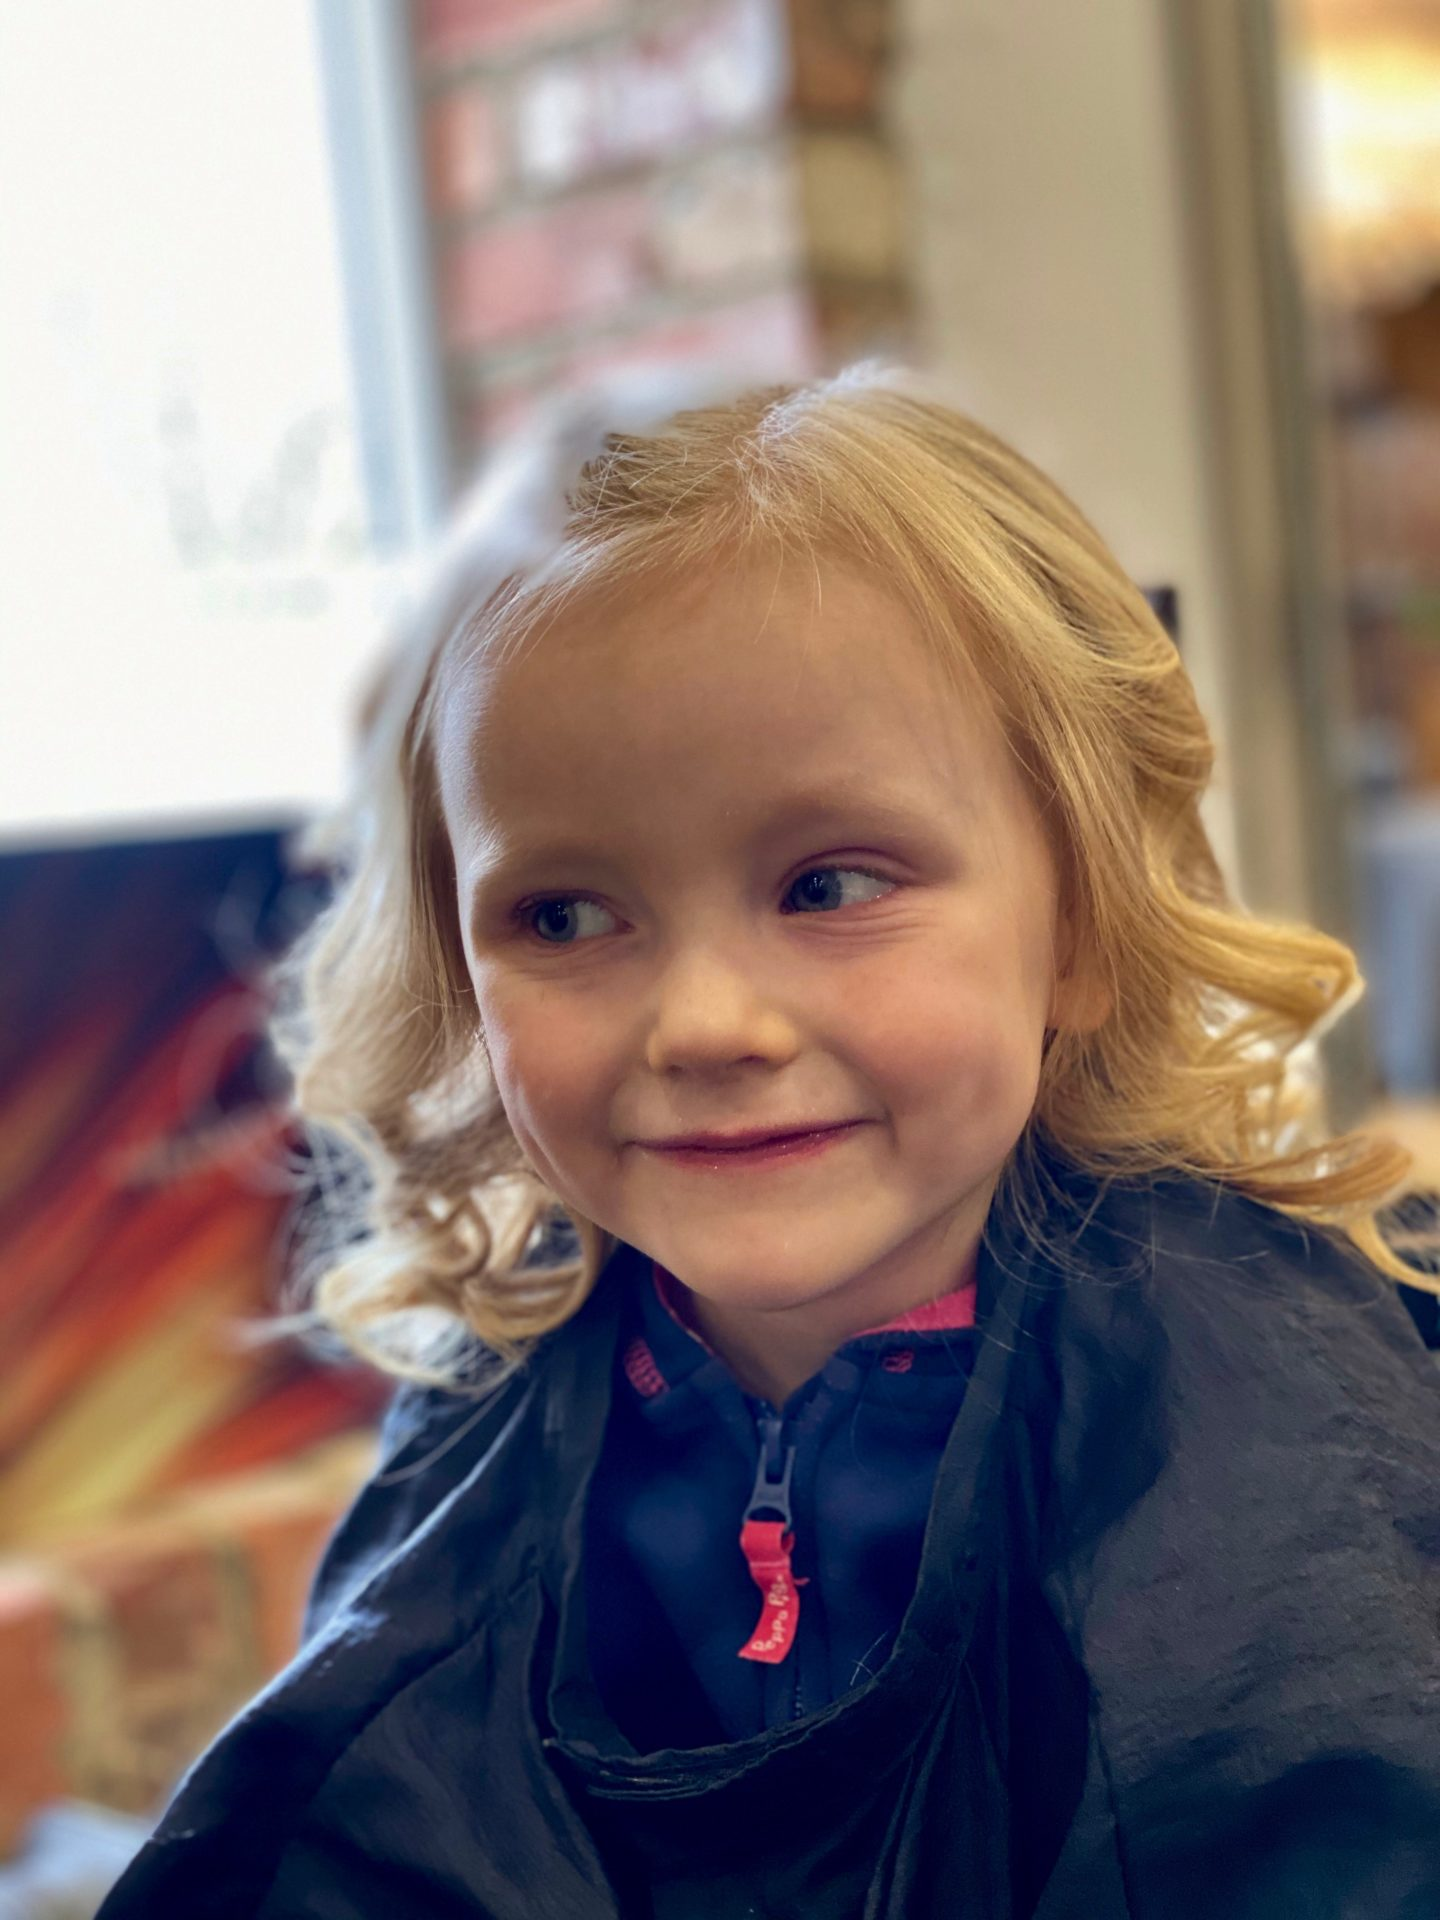 Letters to Lena - on your 5th birthday: 4 year old in hair salon smiling